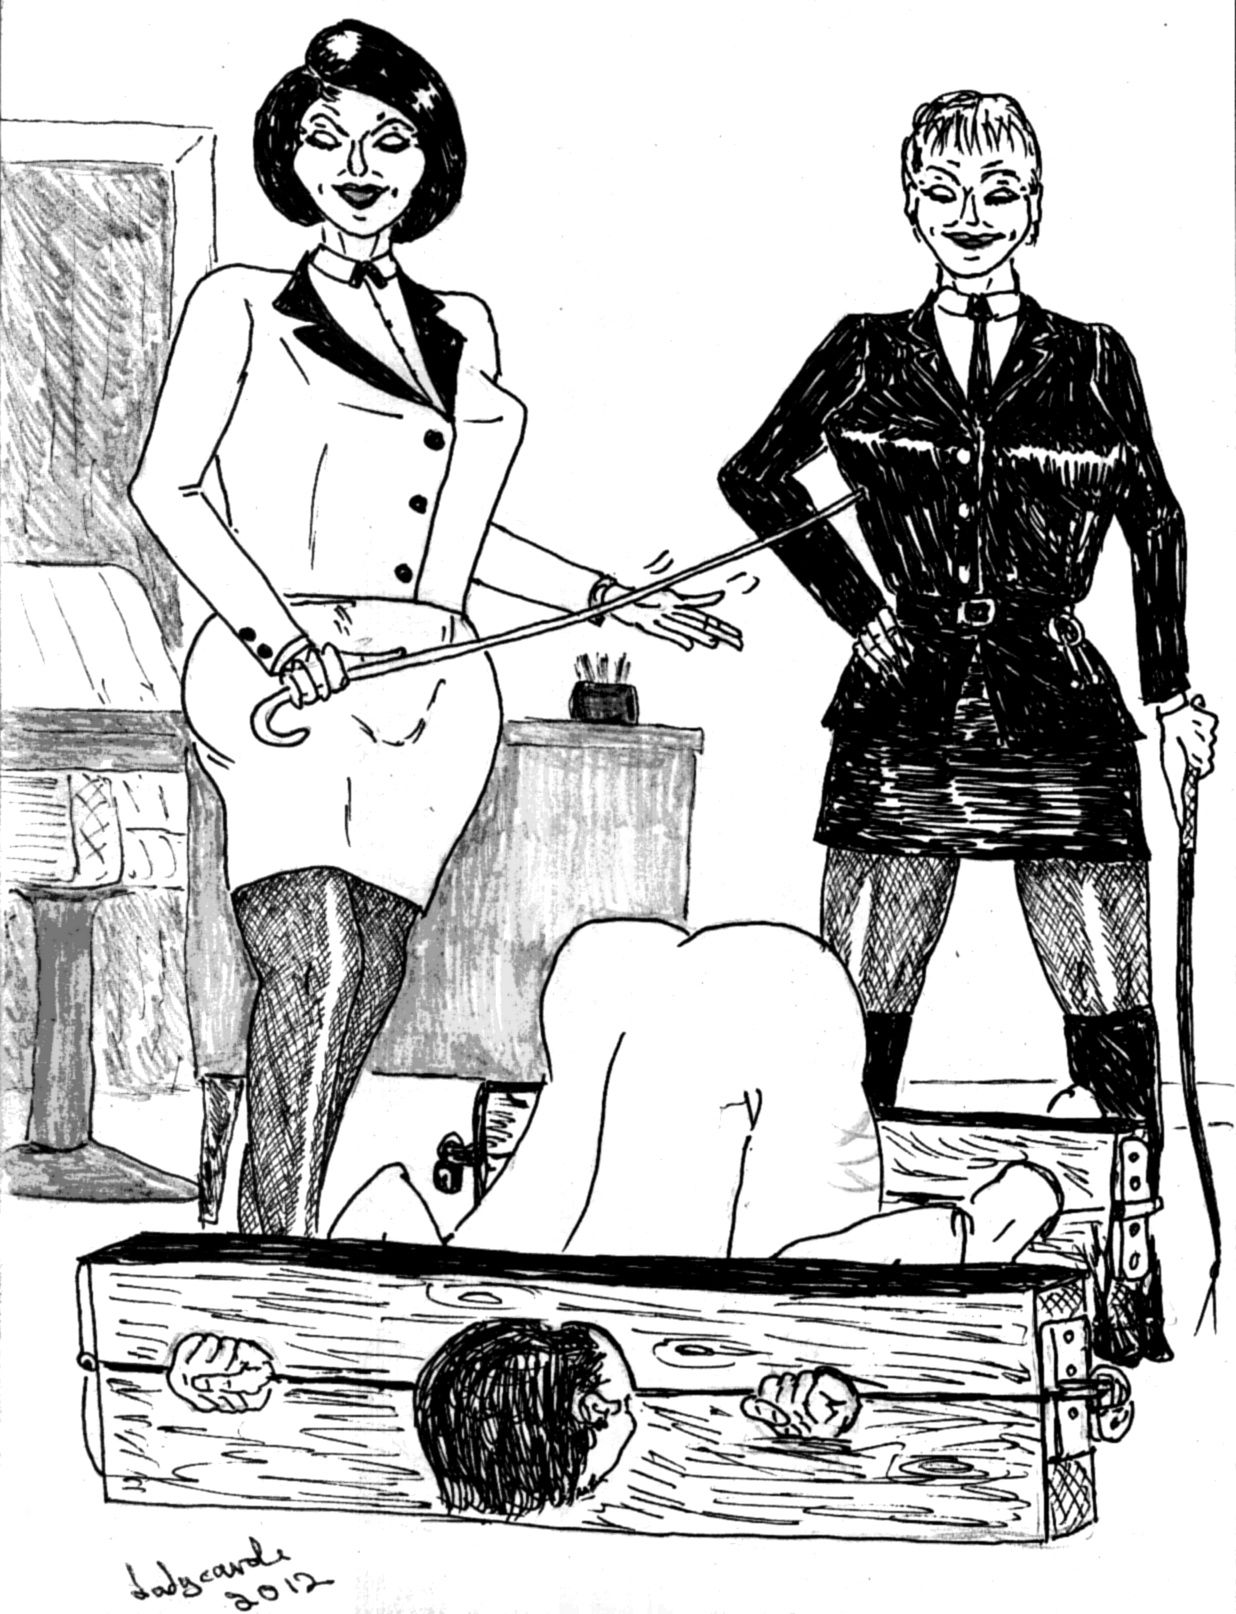 Lord C. reccomend Xtreme femdom art